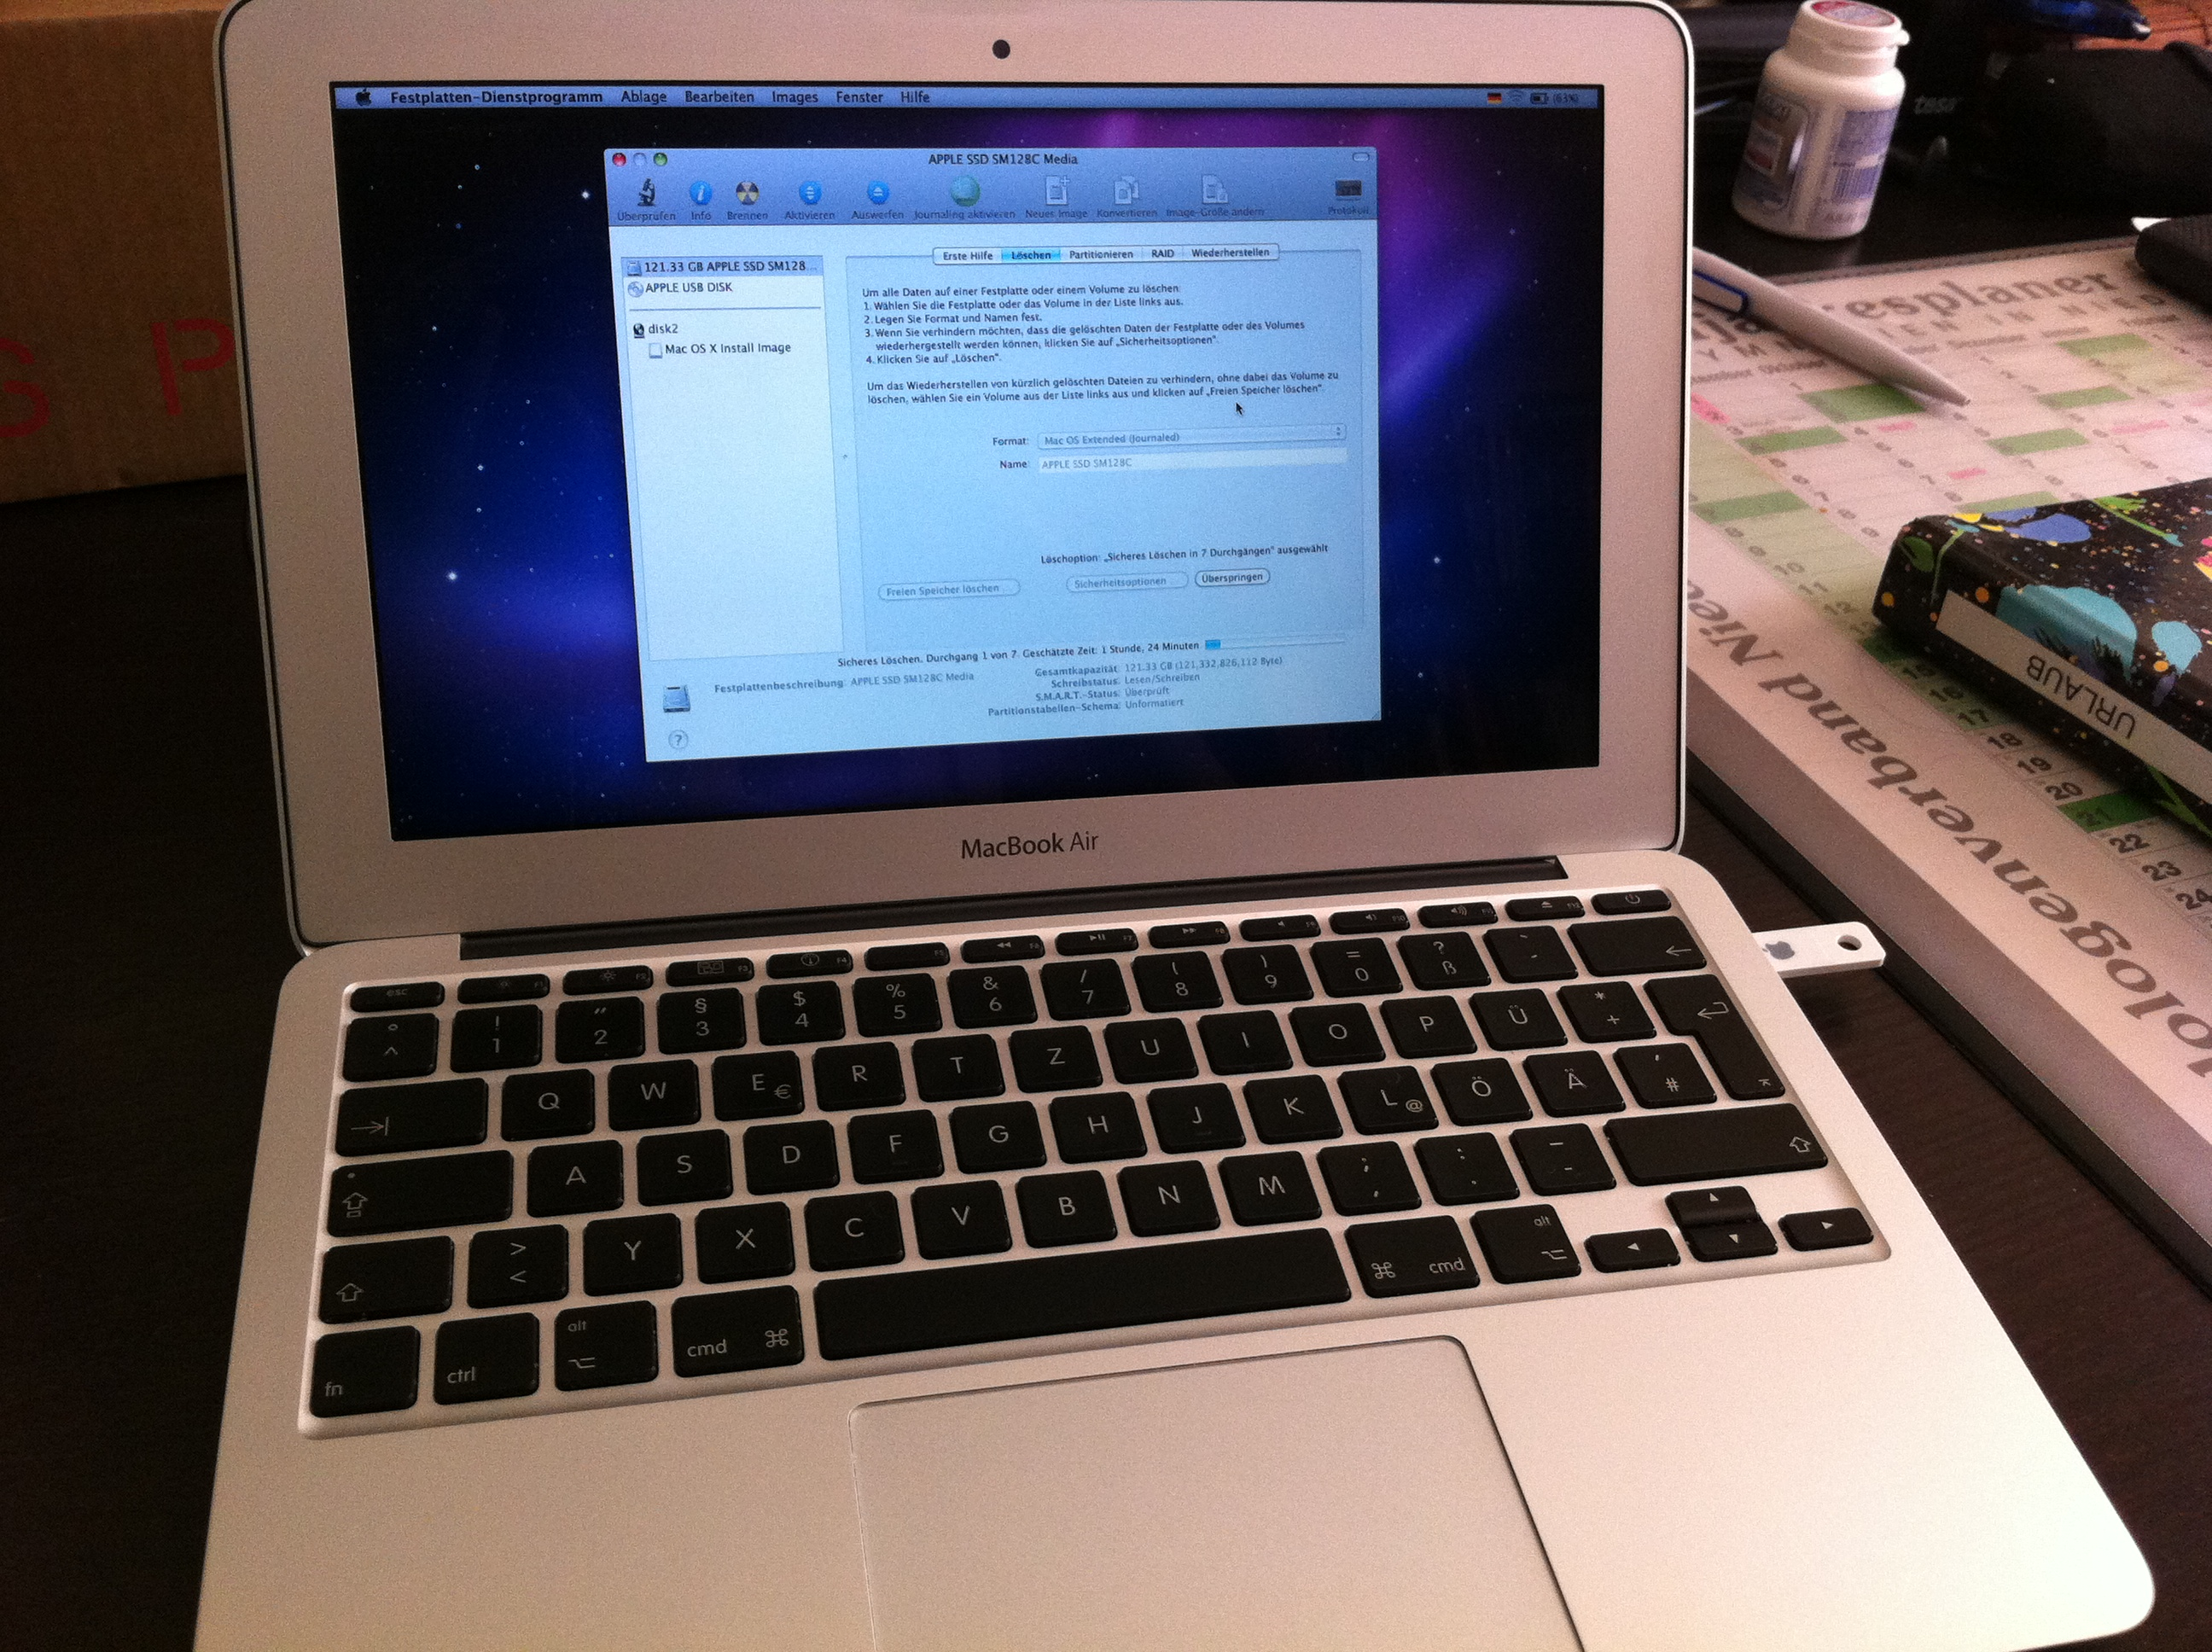 Macbook Air with Apple restore drive running Disk Utility